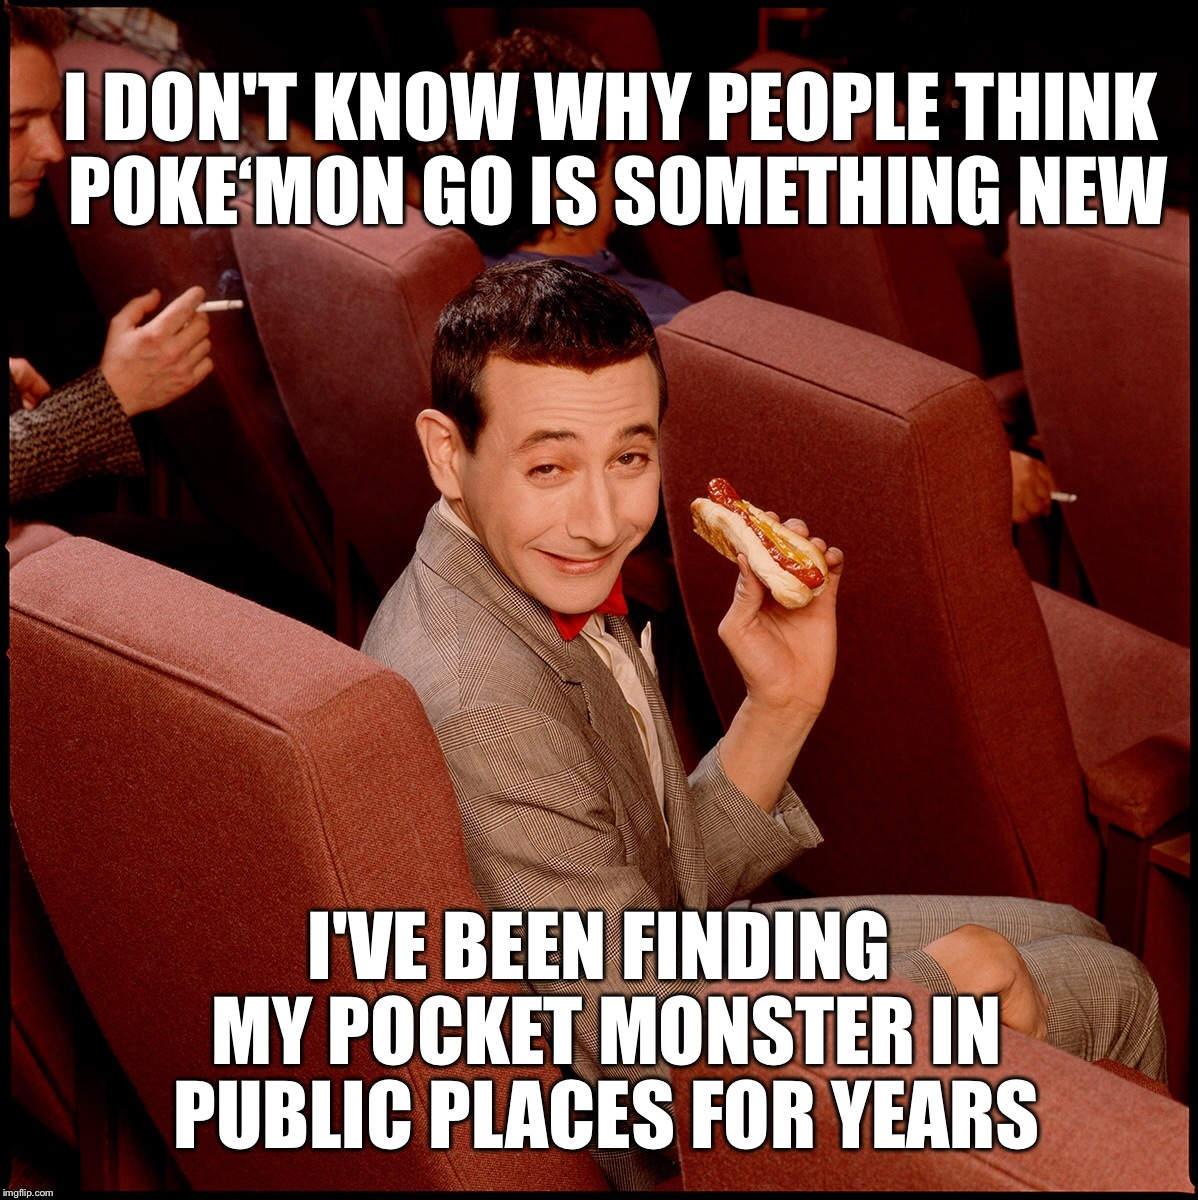 Pee Wee's Big Adventure,a long hard Poke'mon battle | I DON'T KNOW WHY PEOPLE THINK POKE'MON GO IS SOMETHING NEW I'VE BEEN FINDING MY POCKET MONSTER IN PUBLIC PLACES FOR YEARS | image tagged in memes,pokemon go,new feature,front page | made w/ Imgflip meme maker